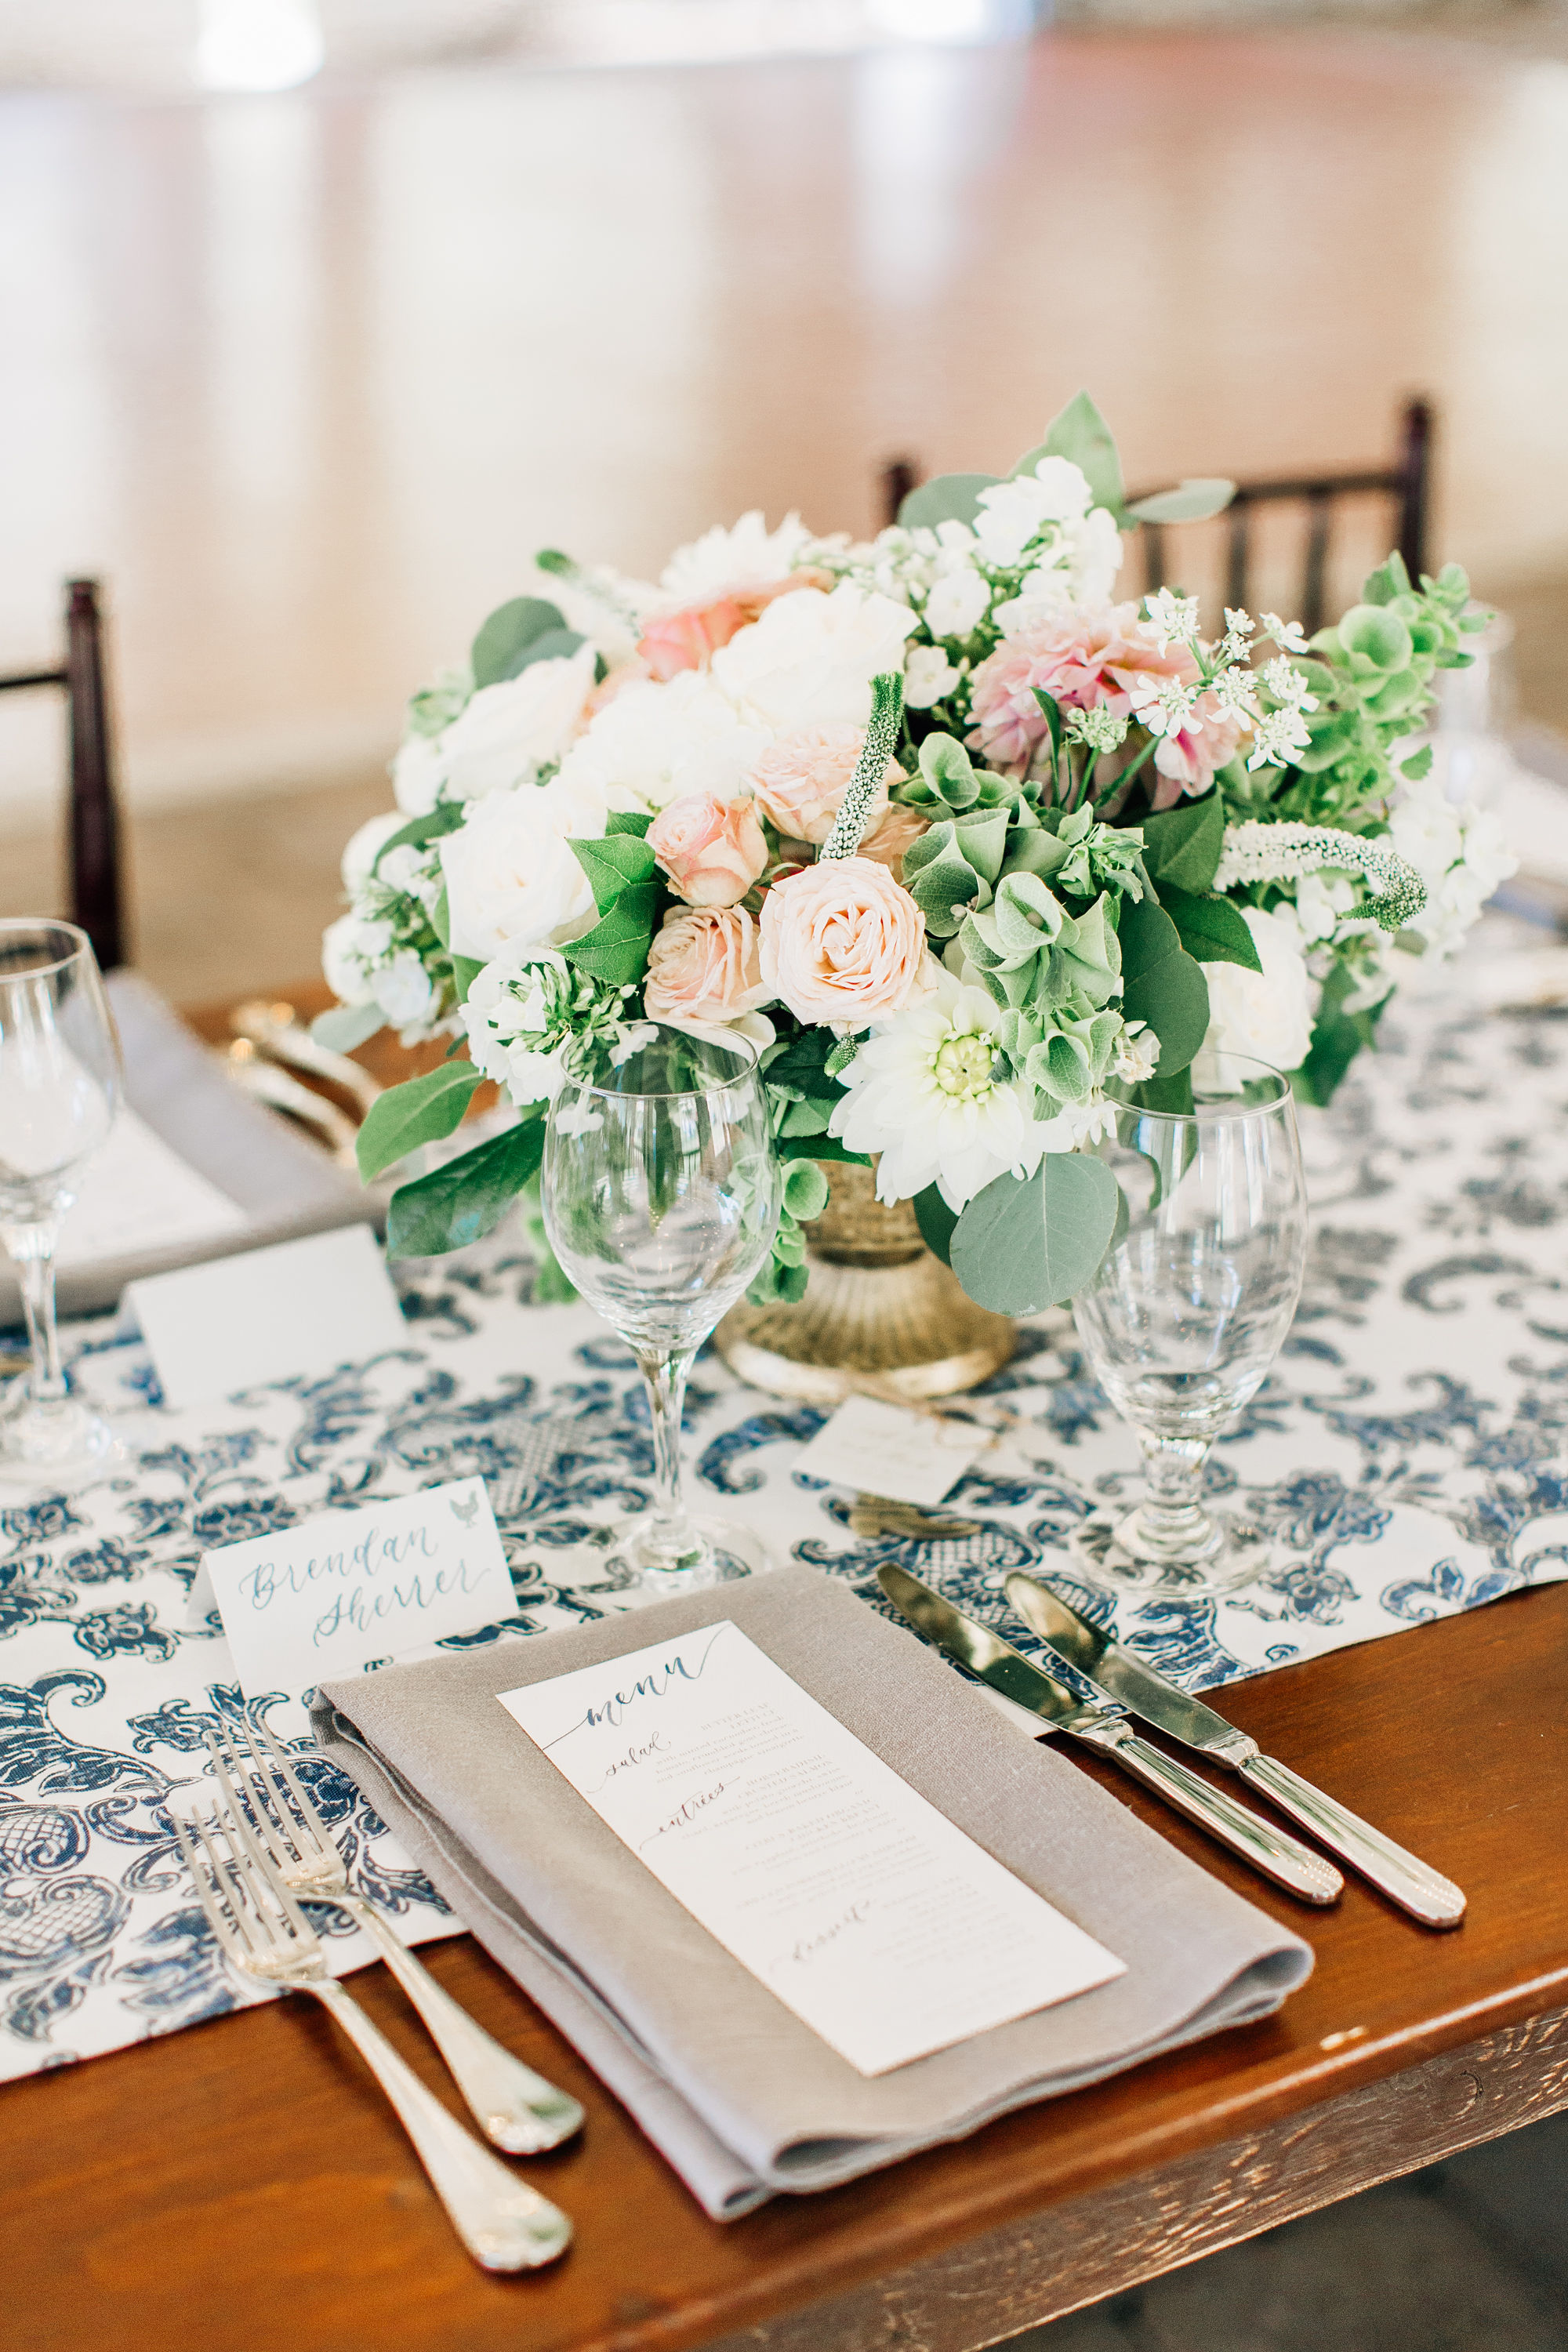 Sam Allen Creates Watercolor Wedding Reception menu and Calligraphy Tent Cards, Jenna Bechtholt Photography